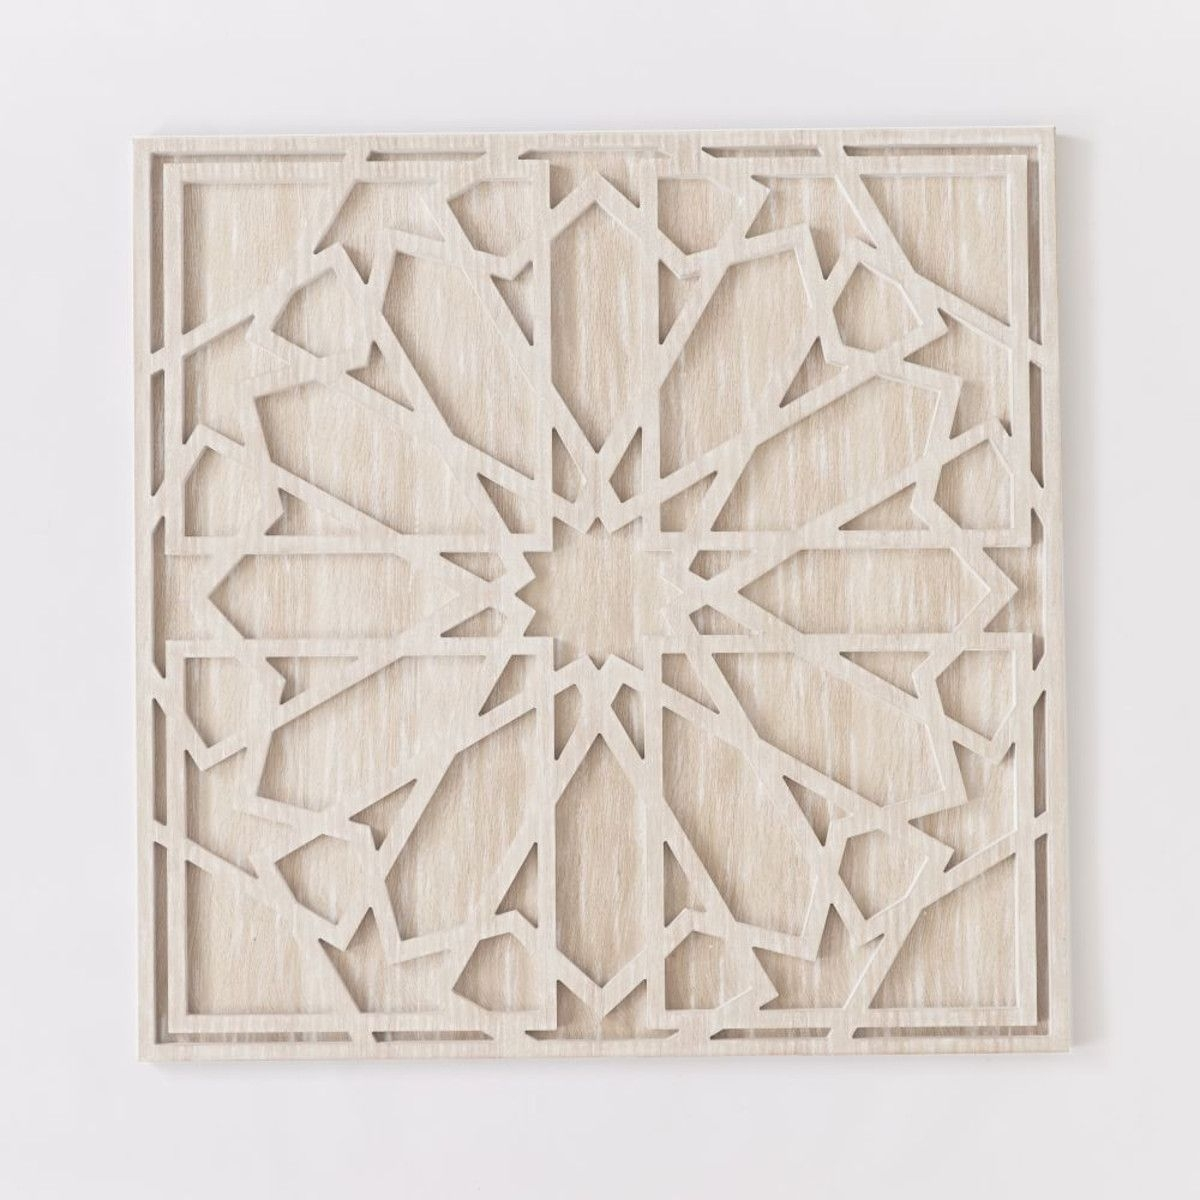 Appealing Art Carved Wood Wall Whitewashed West Elm Uk For Trend And Regarding West Elm Wall Art (View 16 of 20)